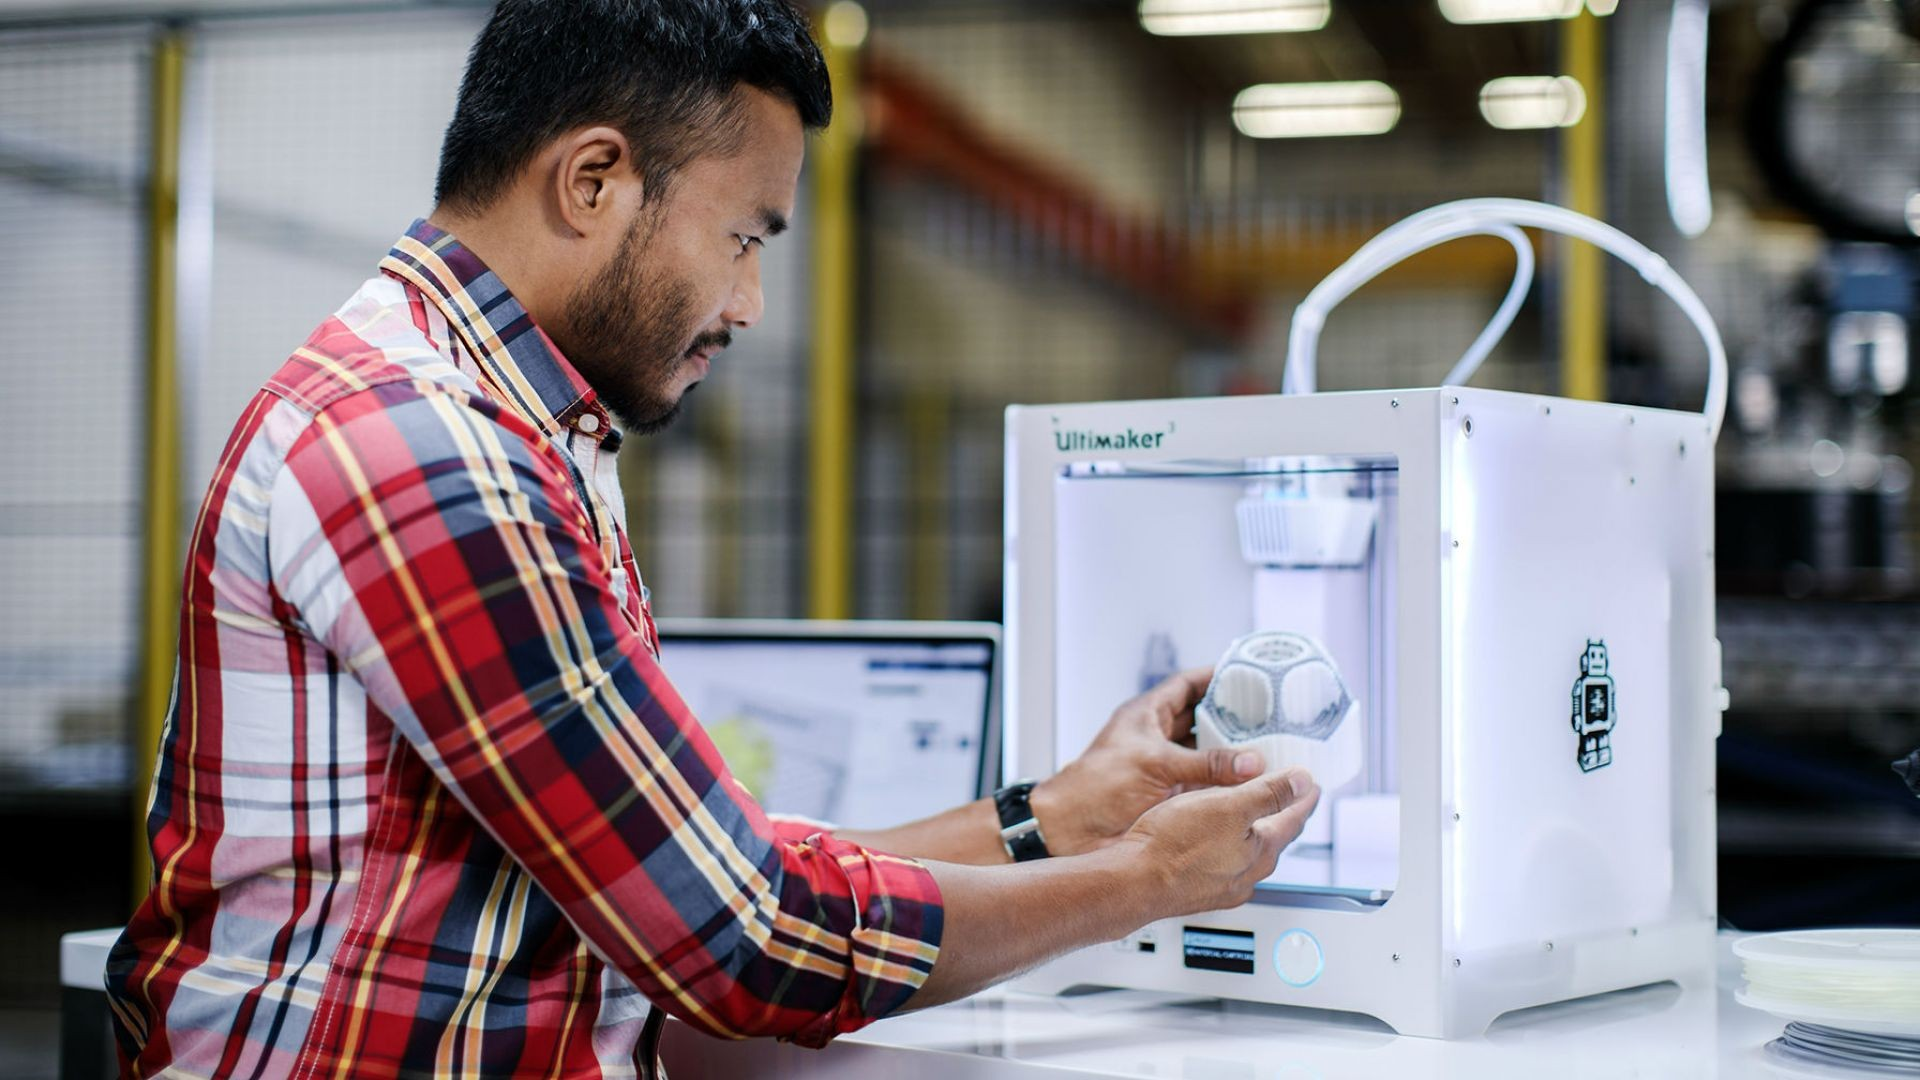 Ultimaker Announces Defensive Patents